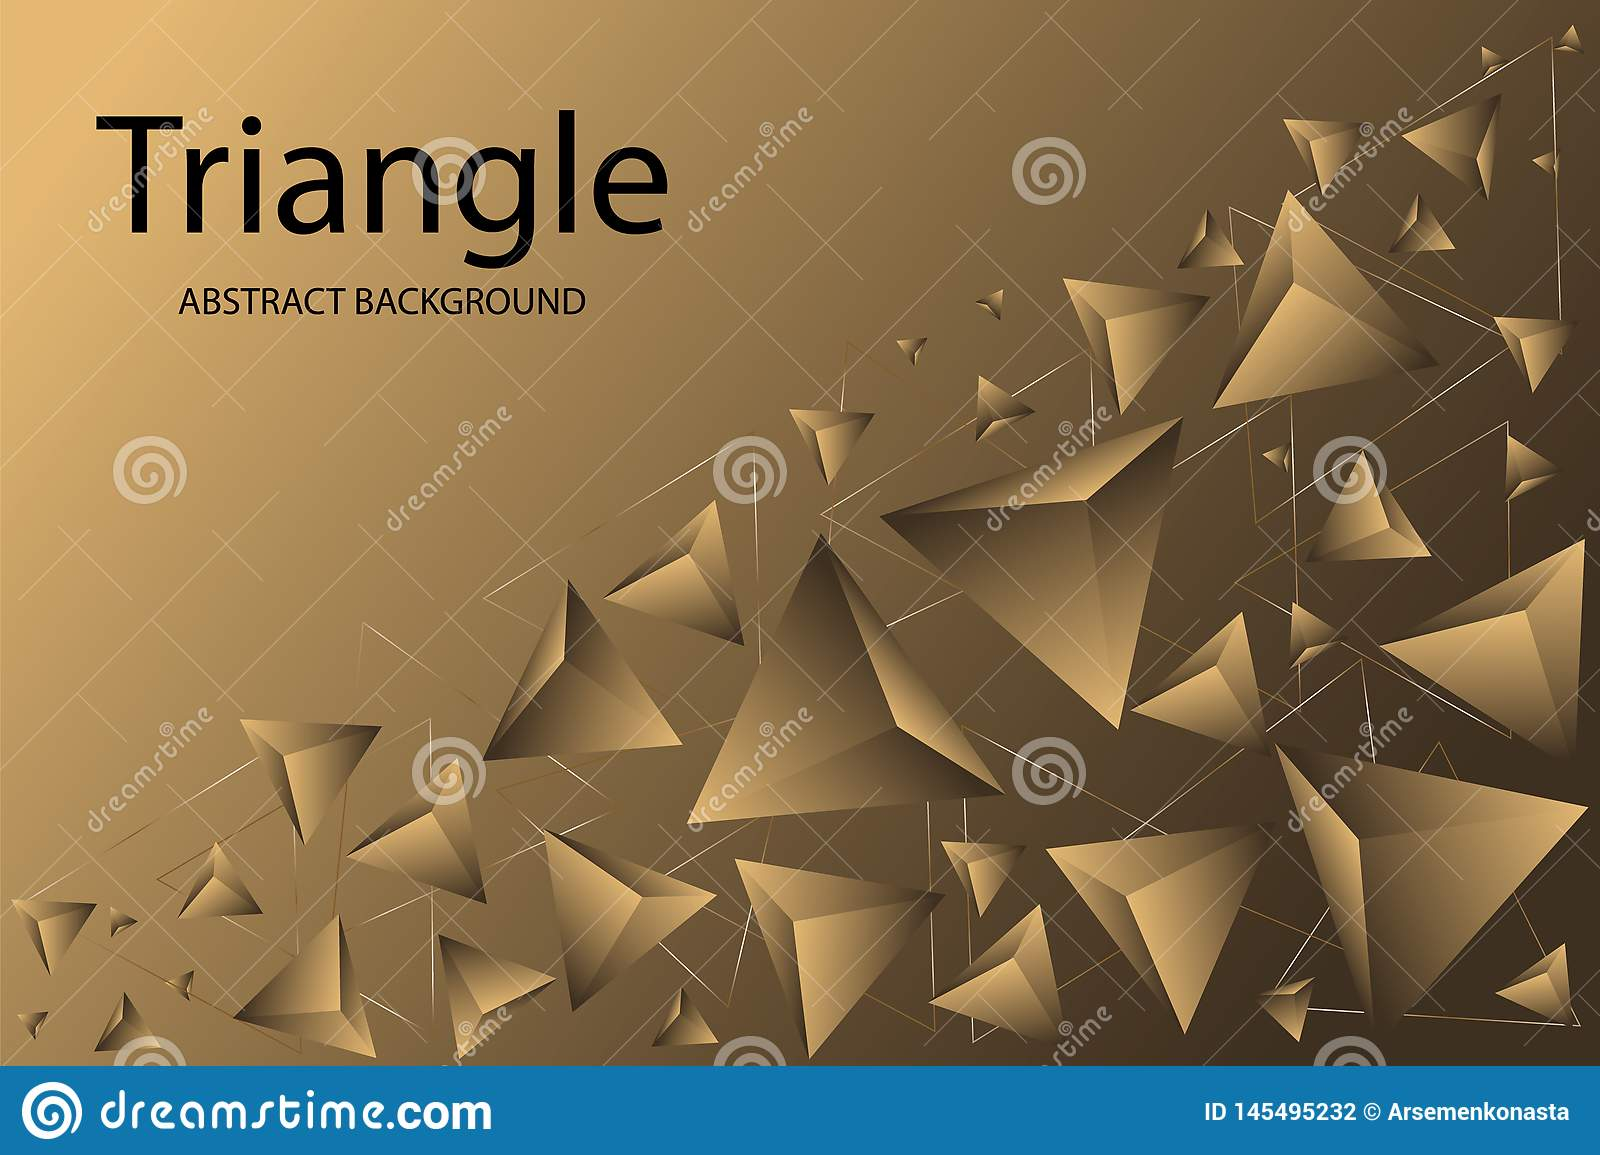 Creative gold abstract background with geometric shapes